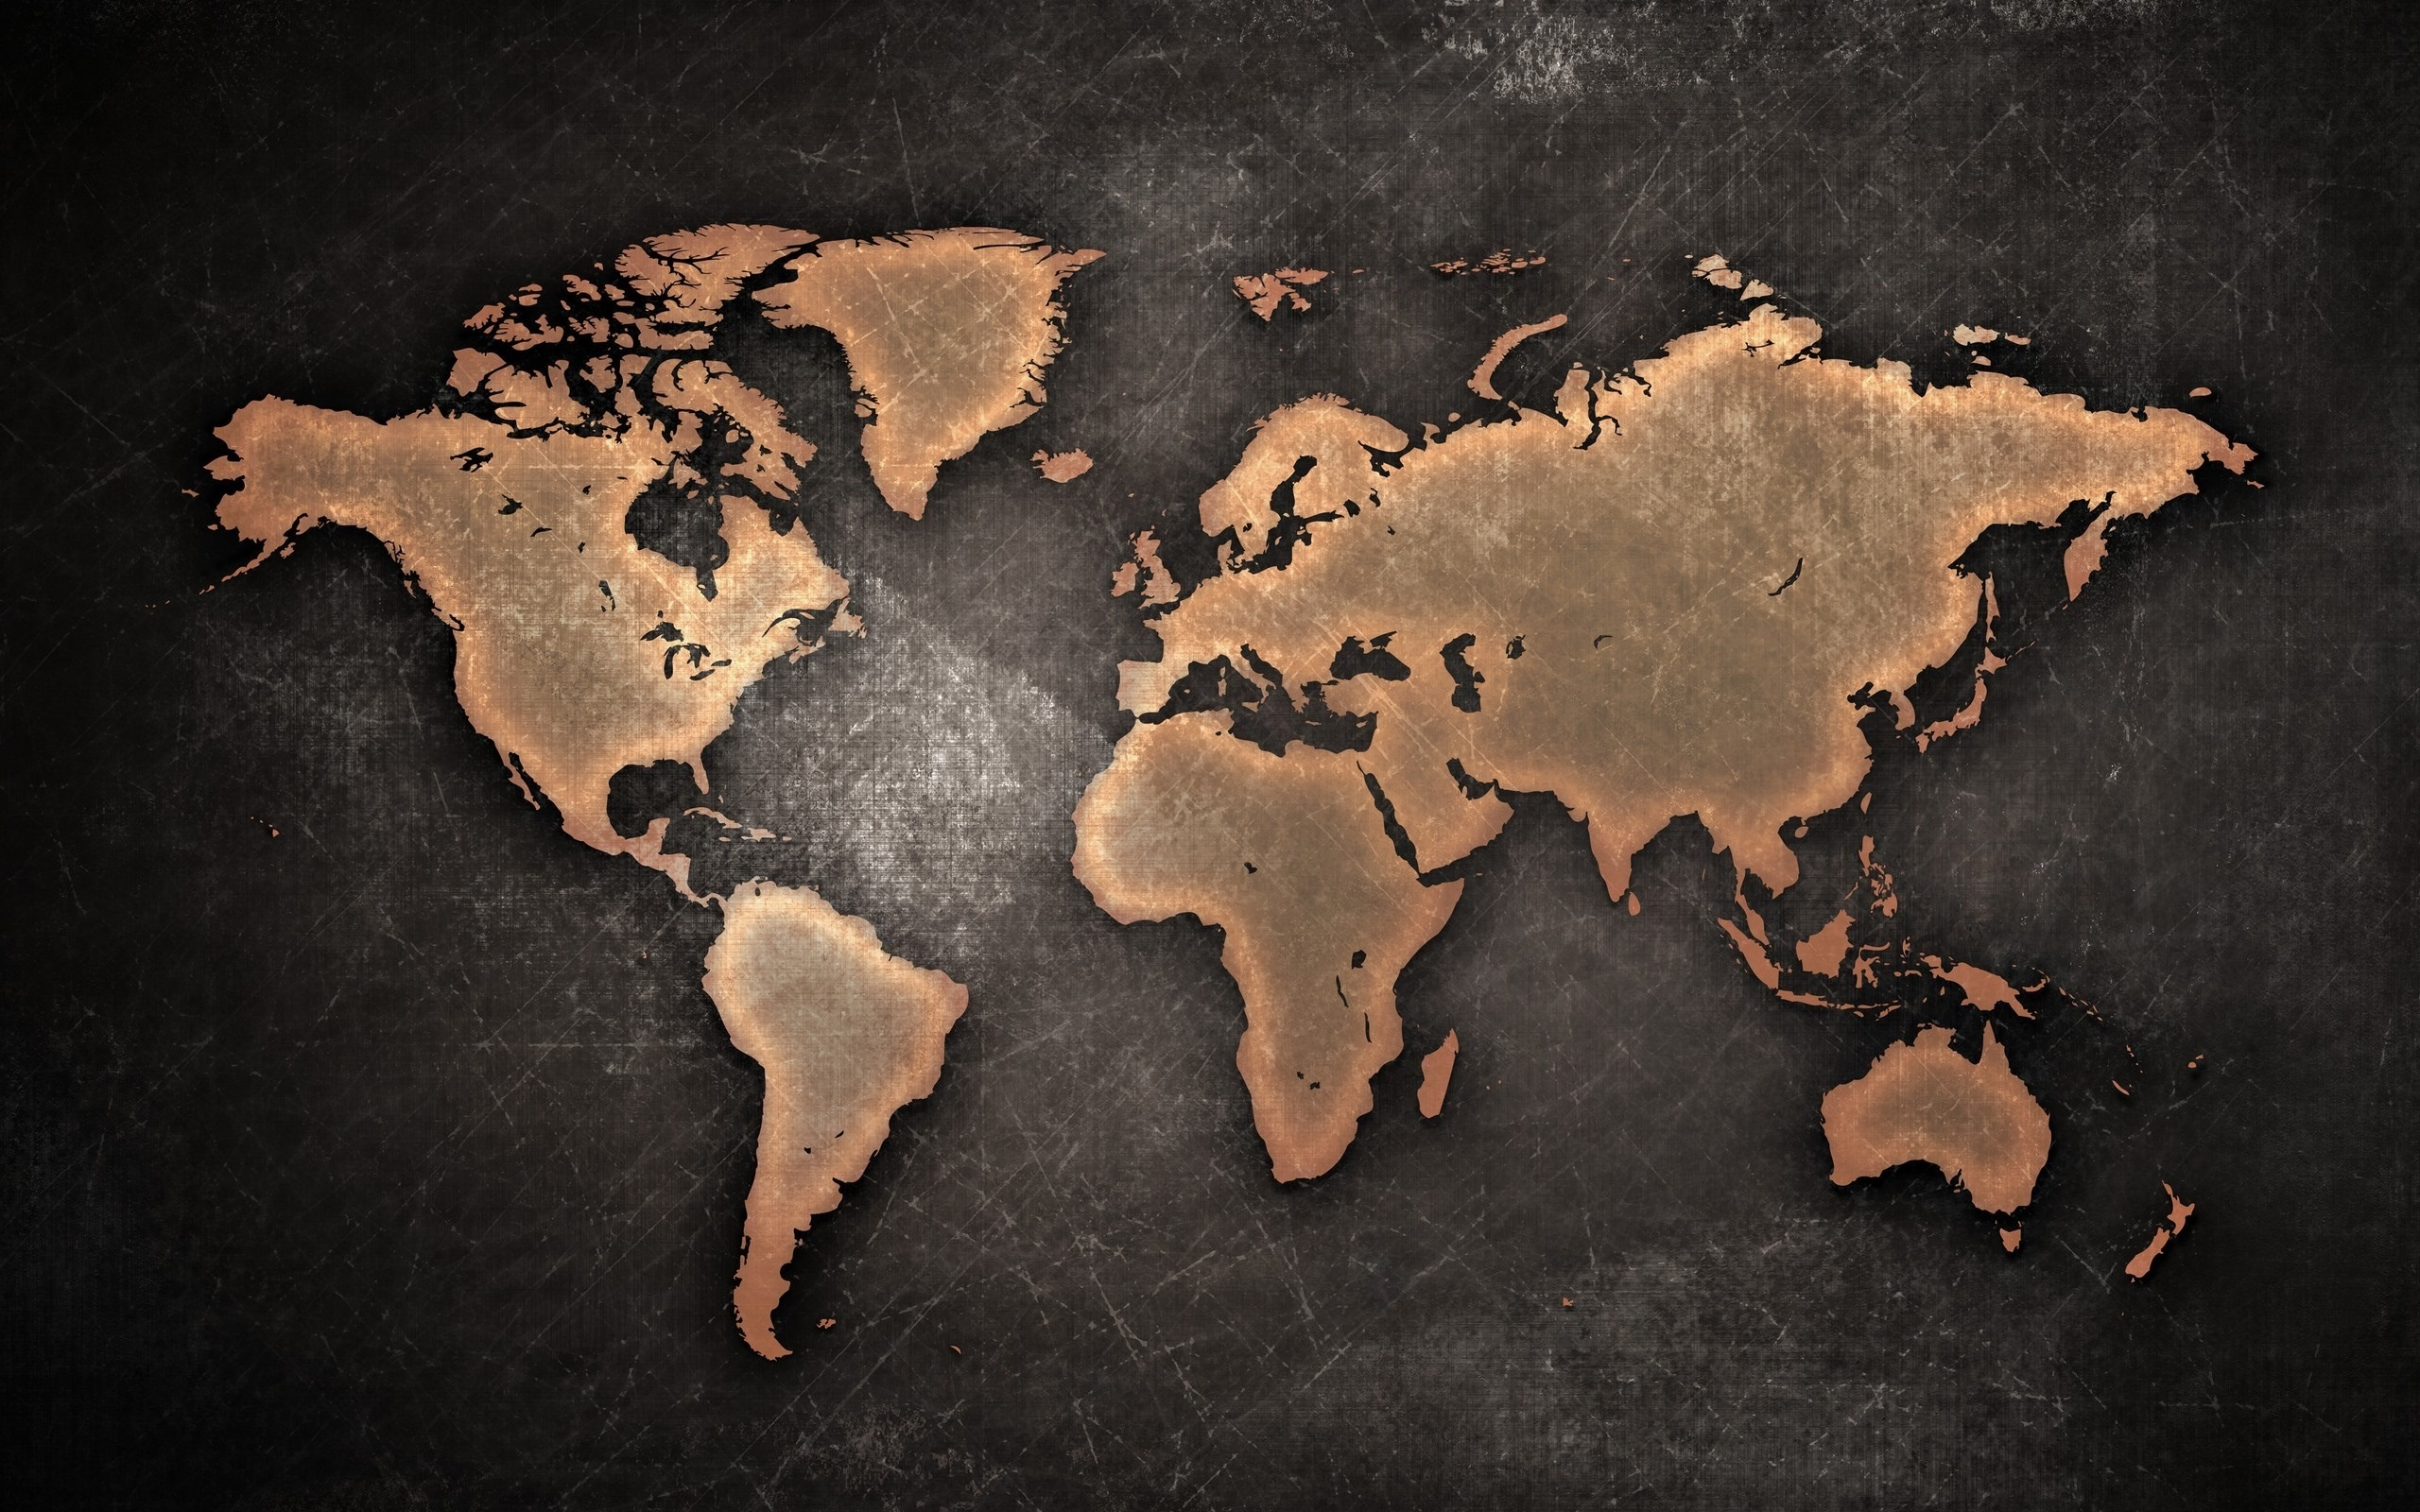 Wallpaper world map continents creative design 2560x1600 hd download this wallpaper gumiabroncs Image collections